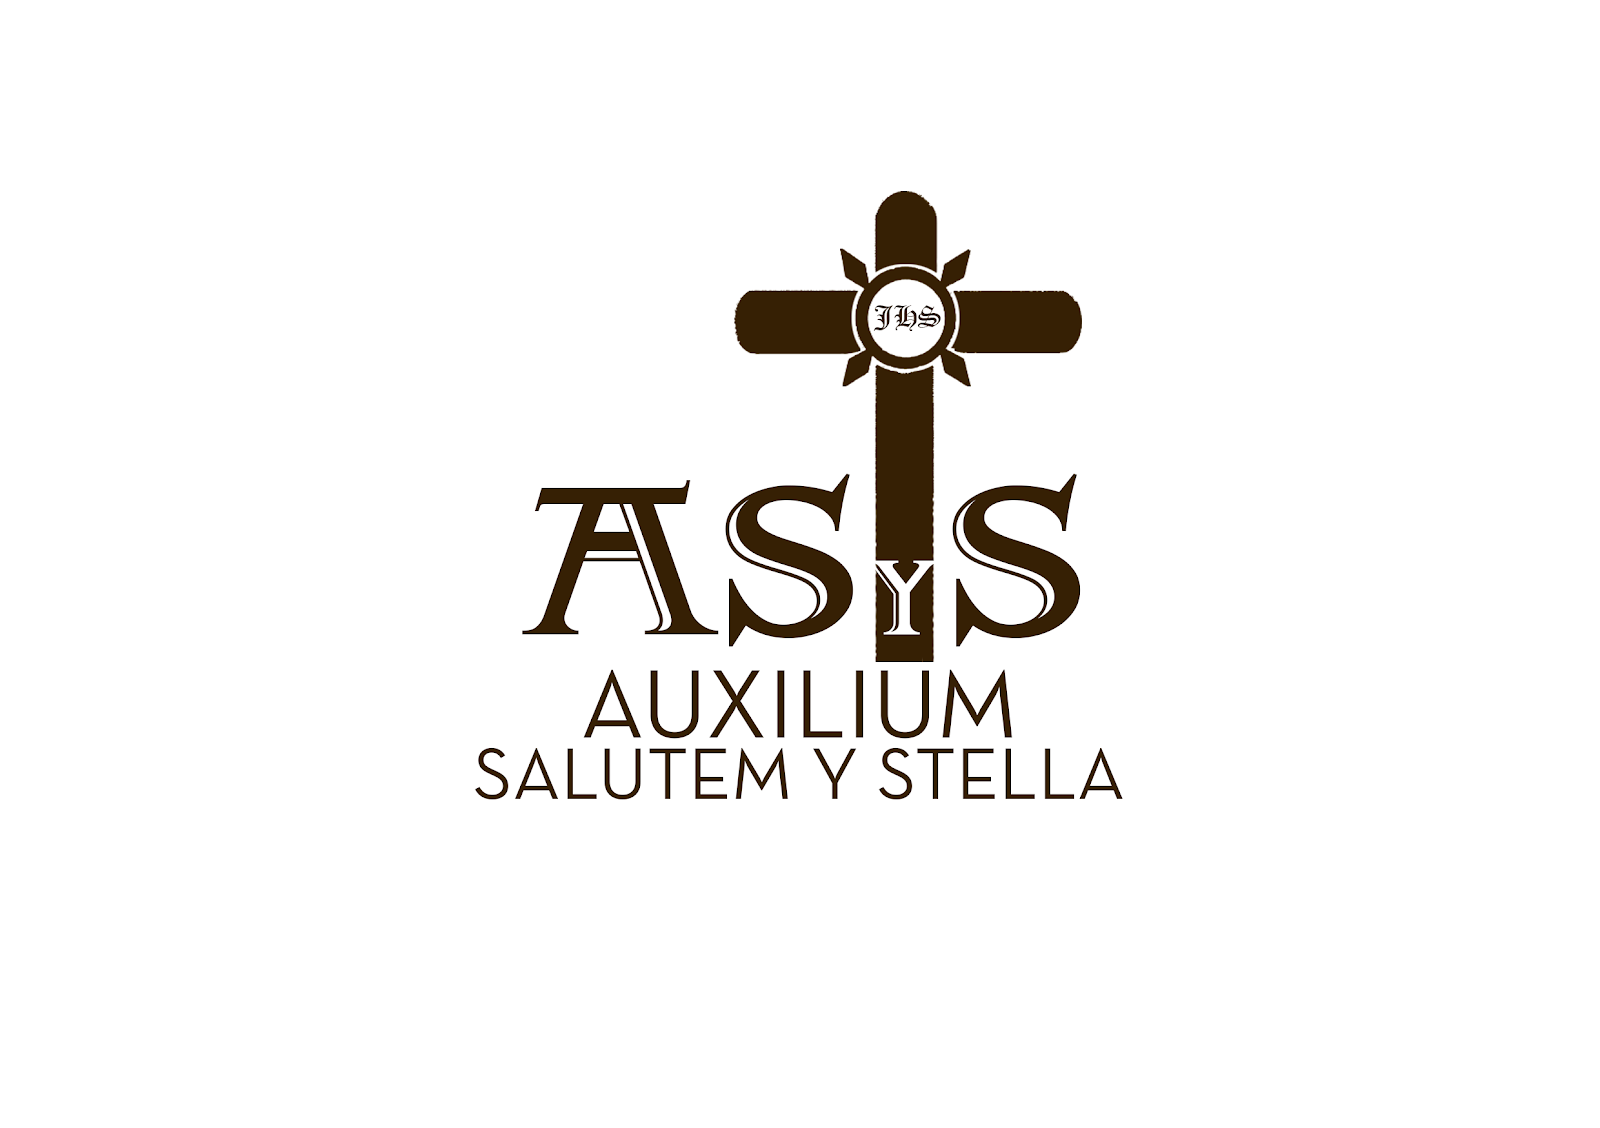 PROYECTO ASYS